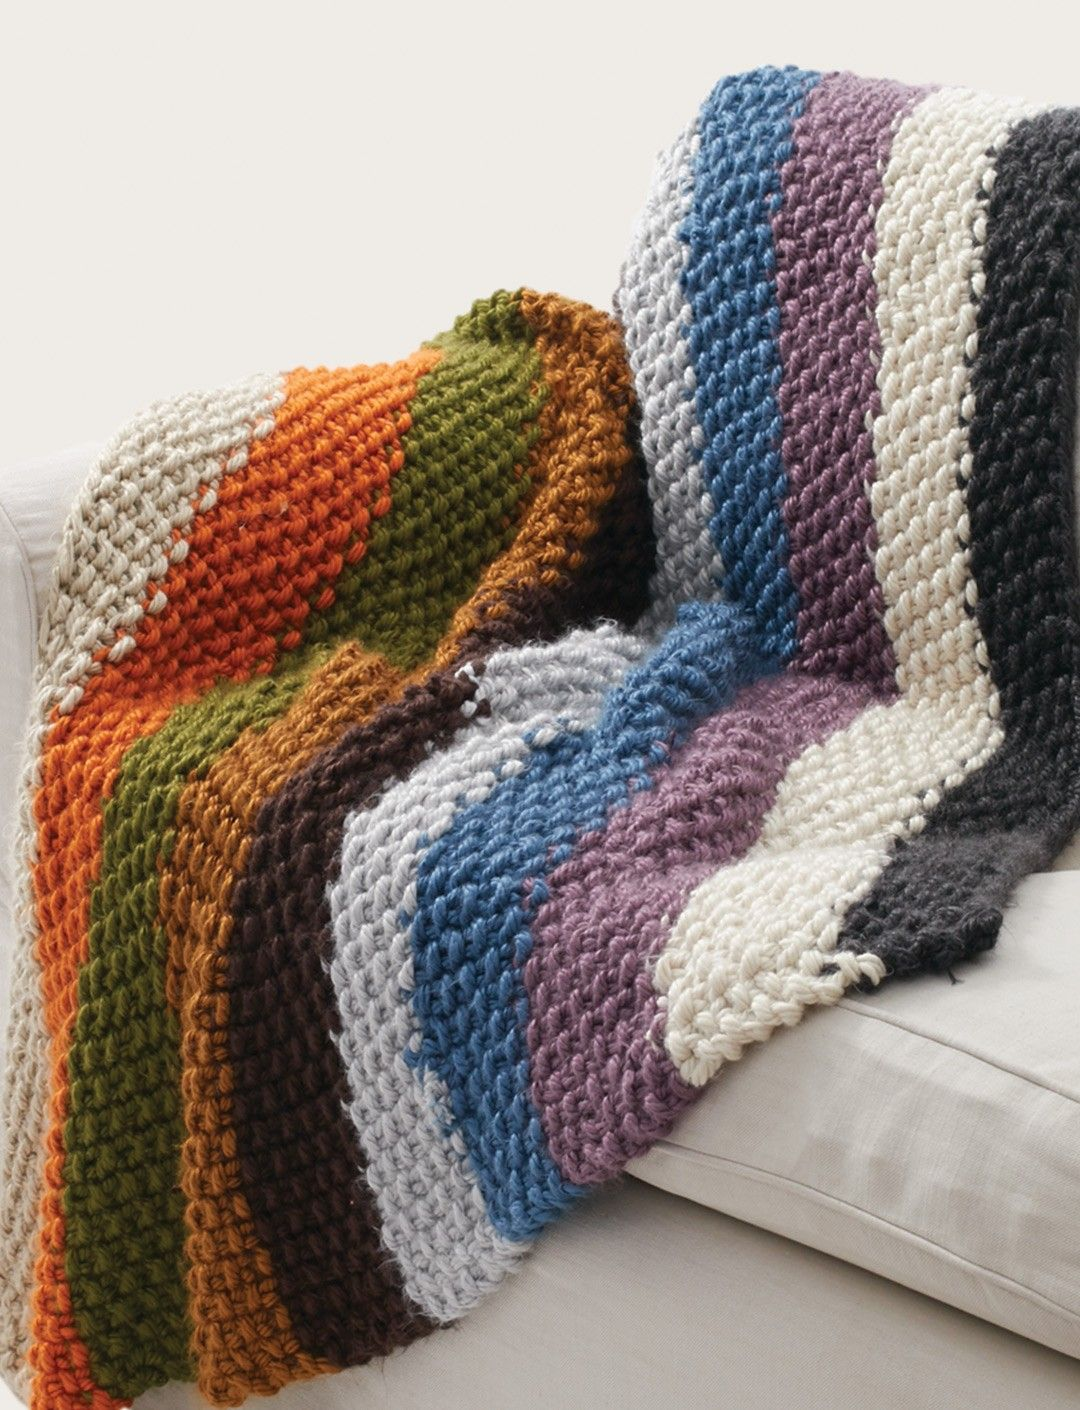 Knitting Blanket Patterns Free : Bernat seed stitch blanket cozy chunky rainbow striped